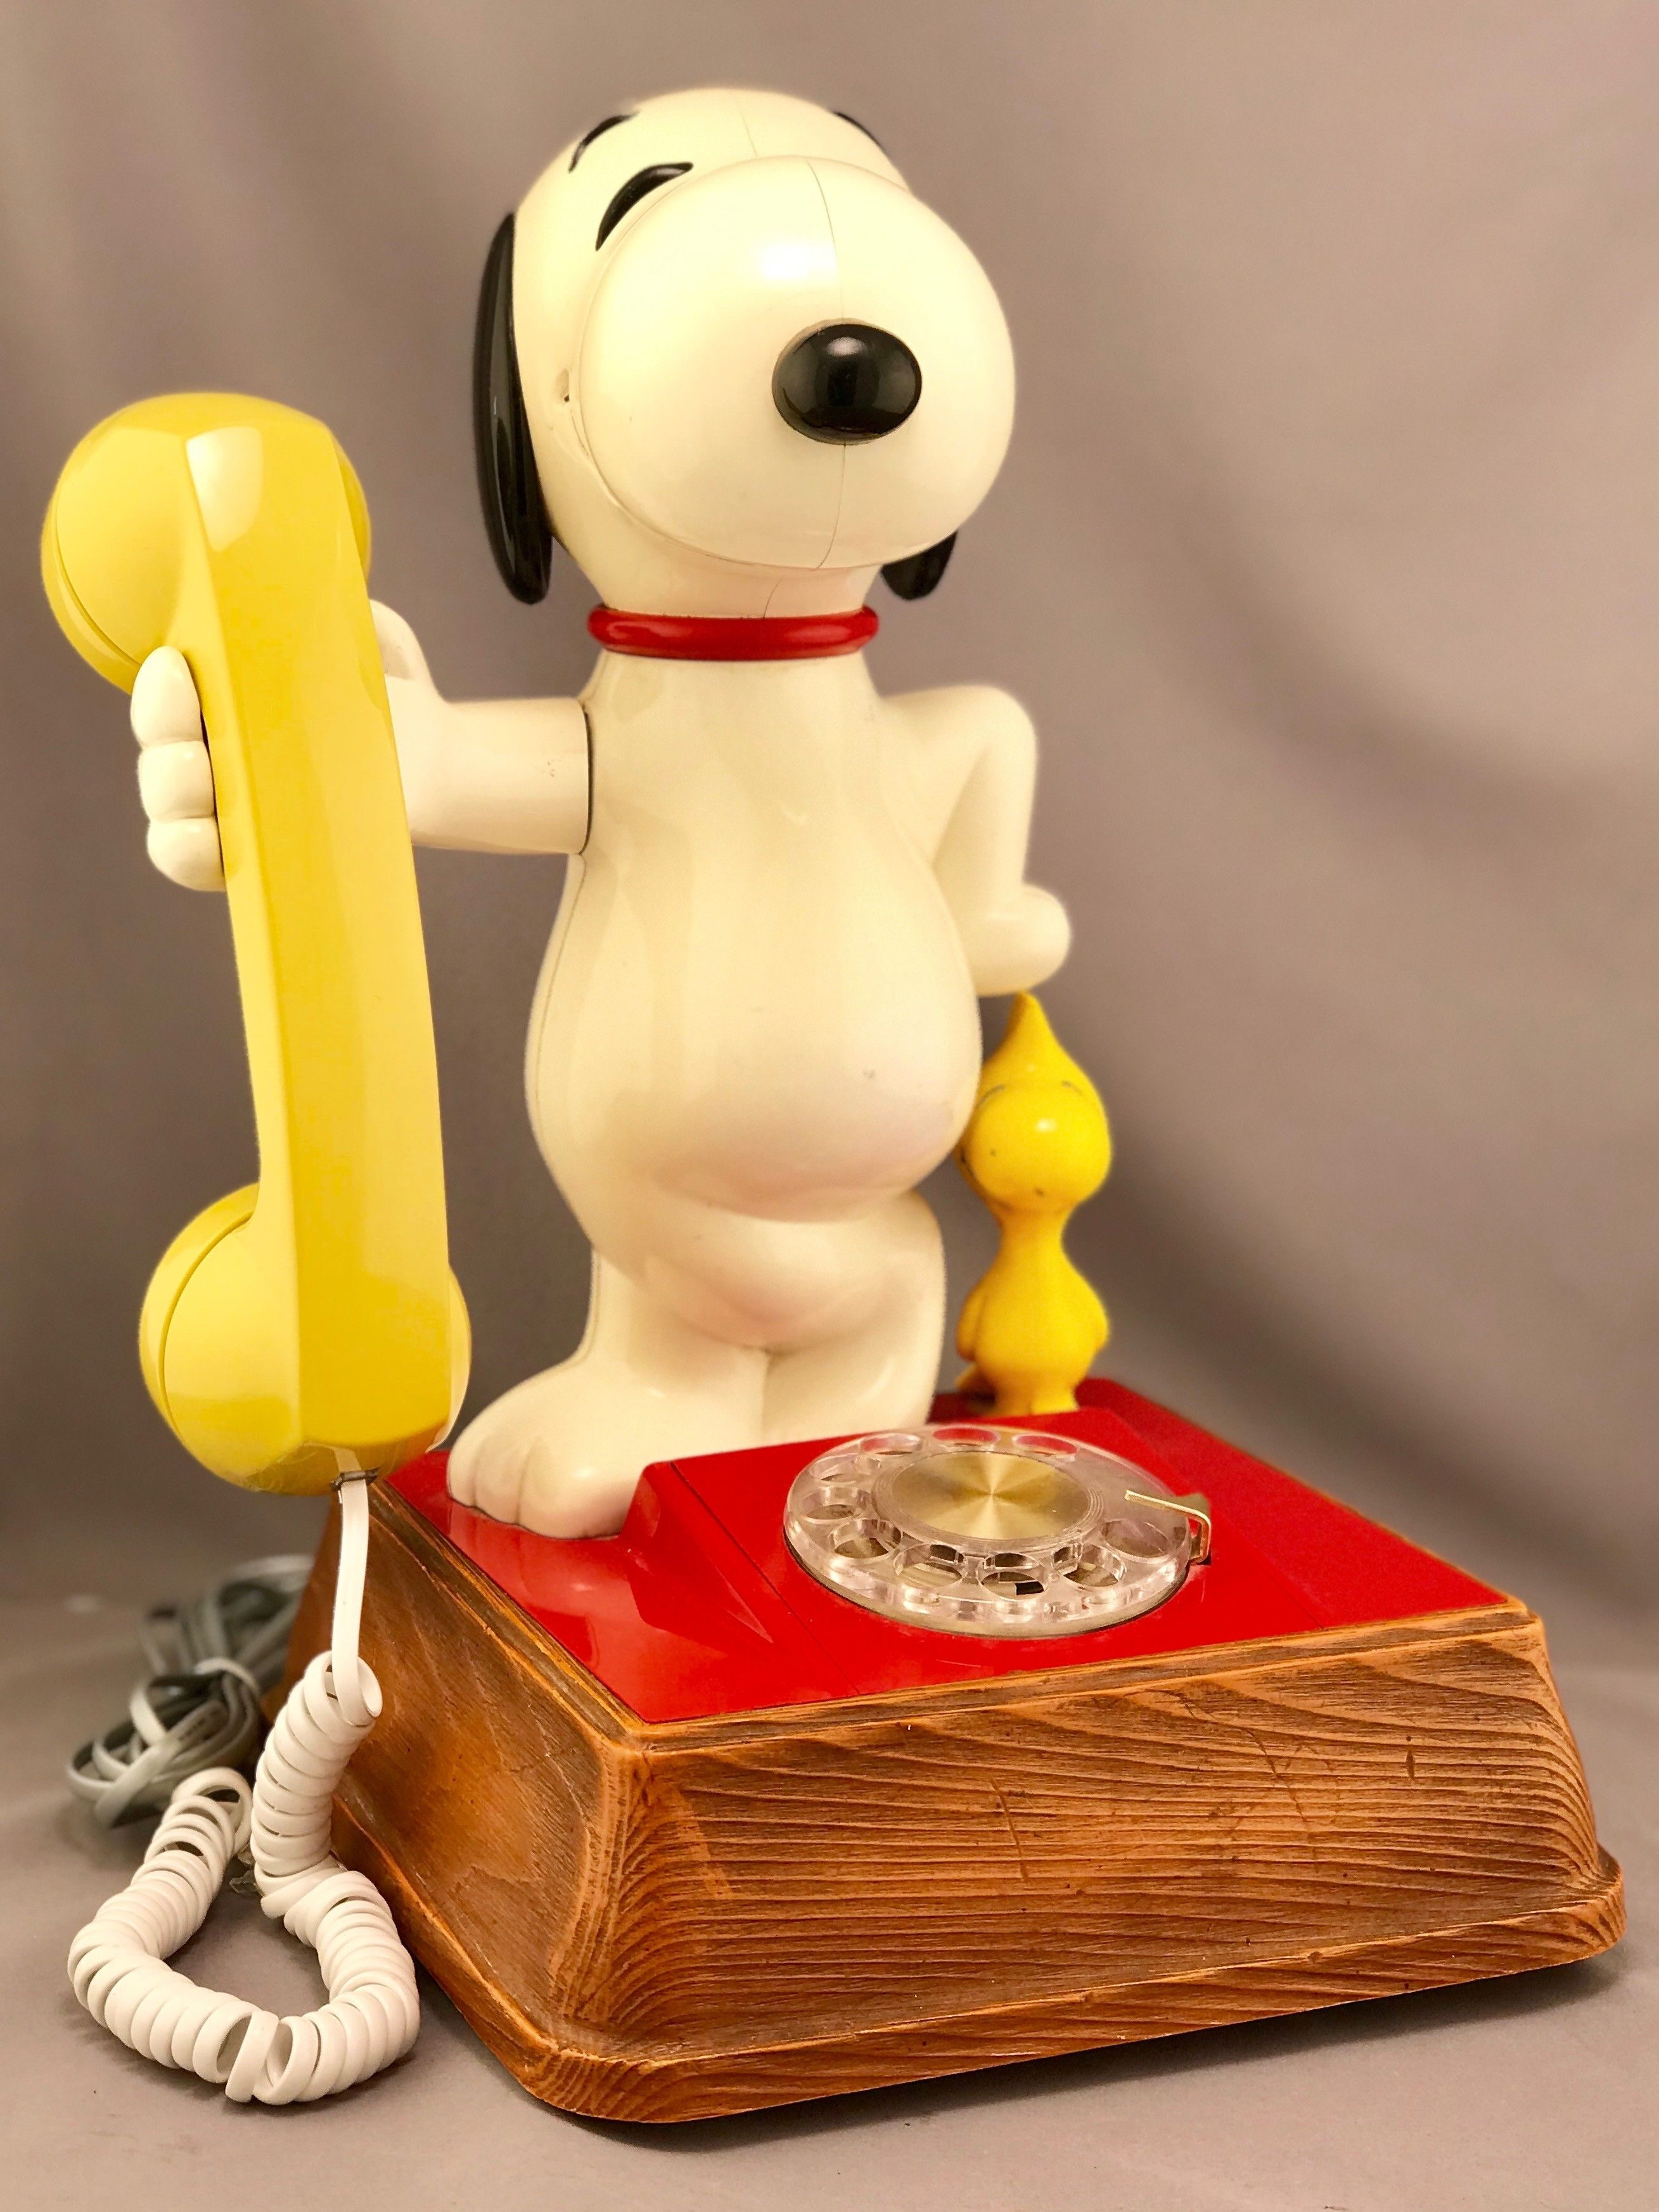 The Snoopy And Woodstock Telephone With Images Snoopy And